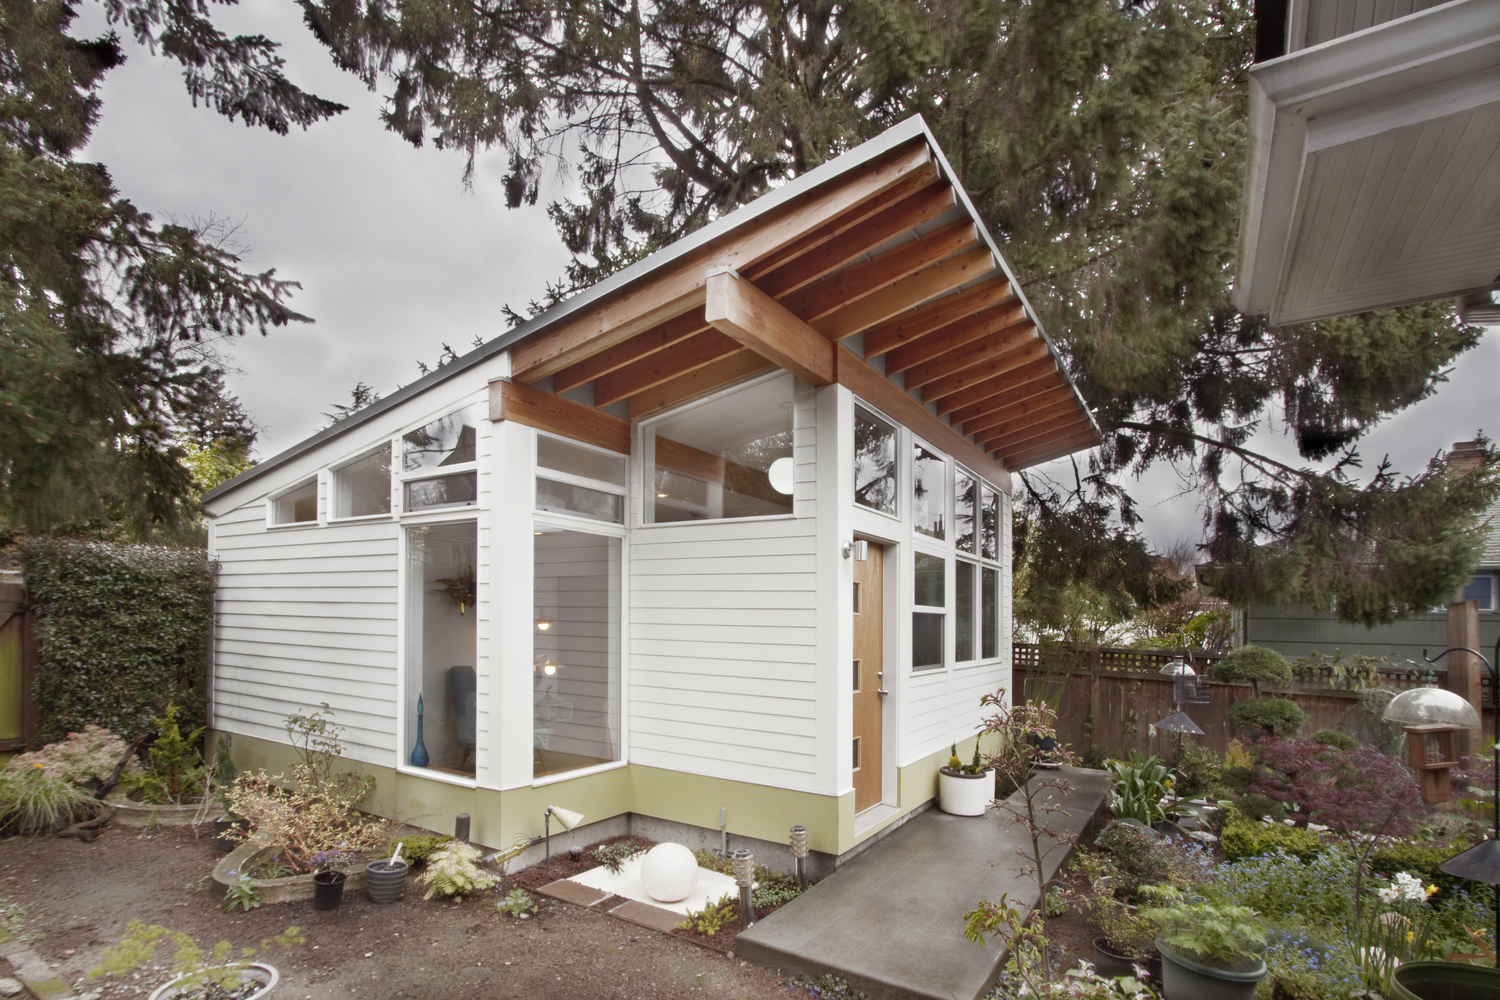 The Tiny House Trend | Little House in the Valley